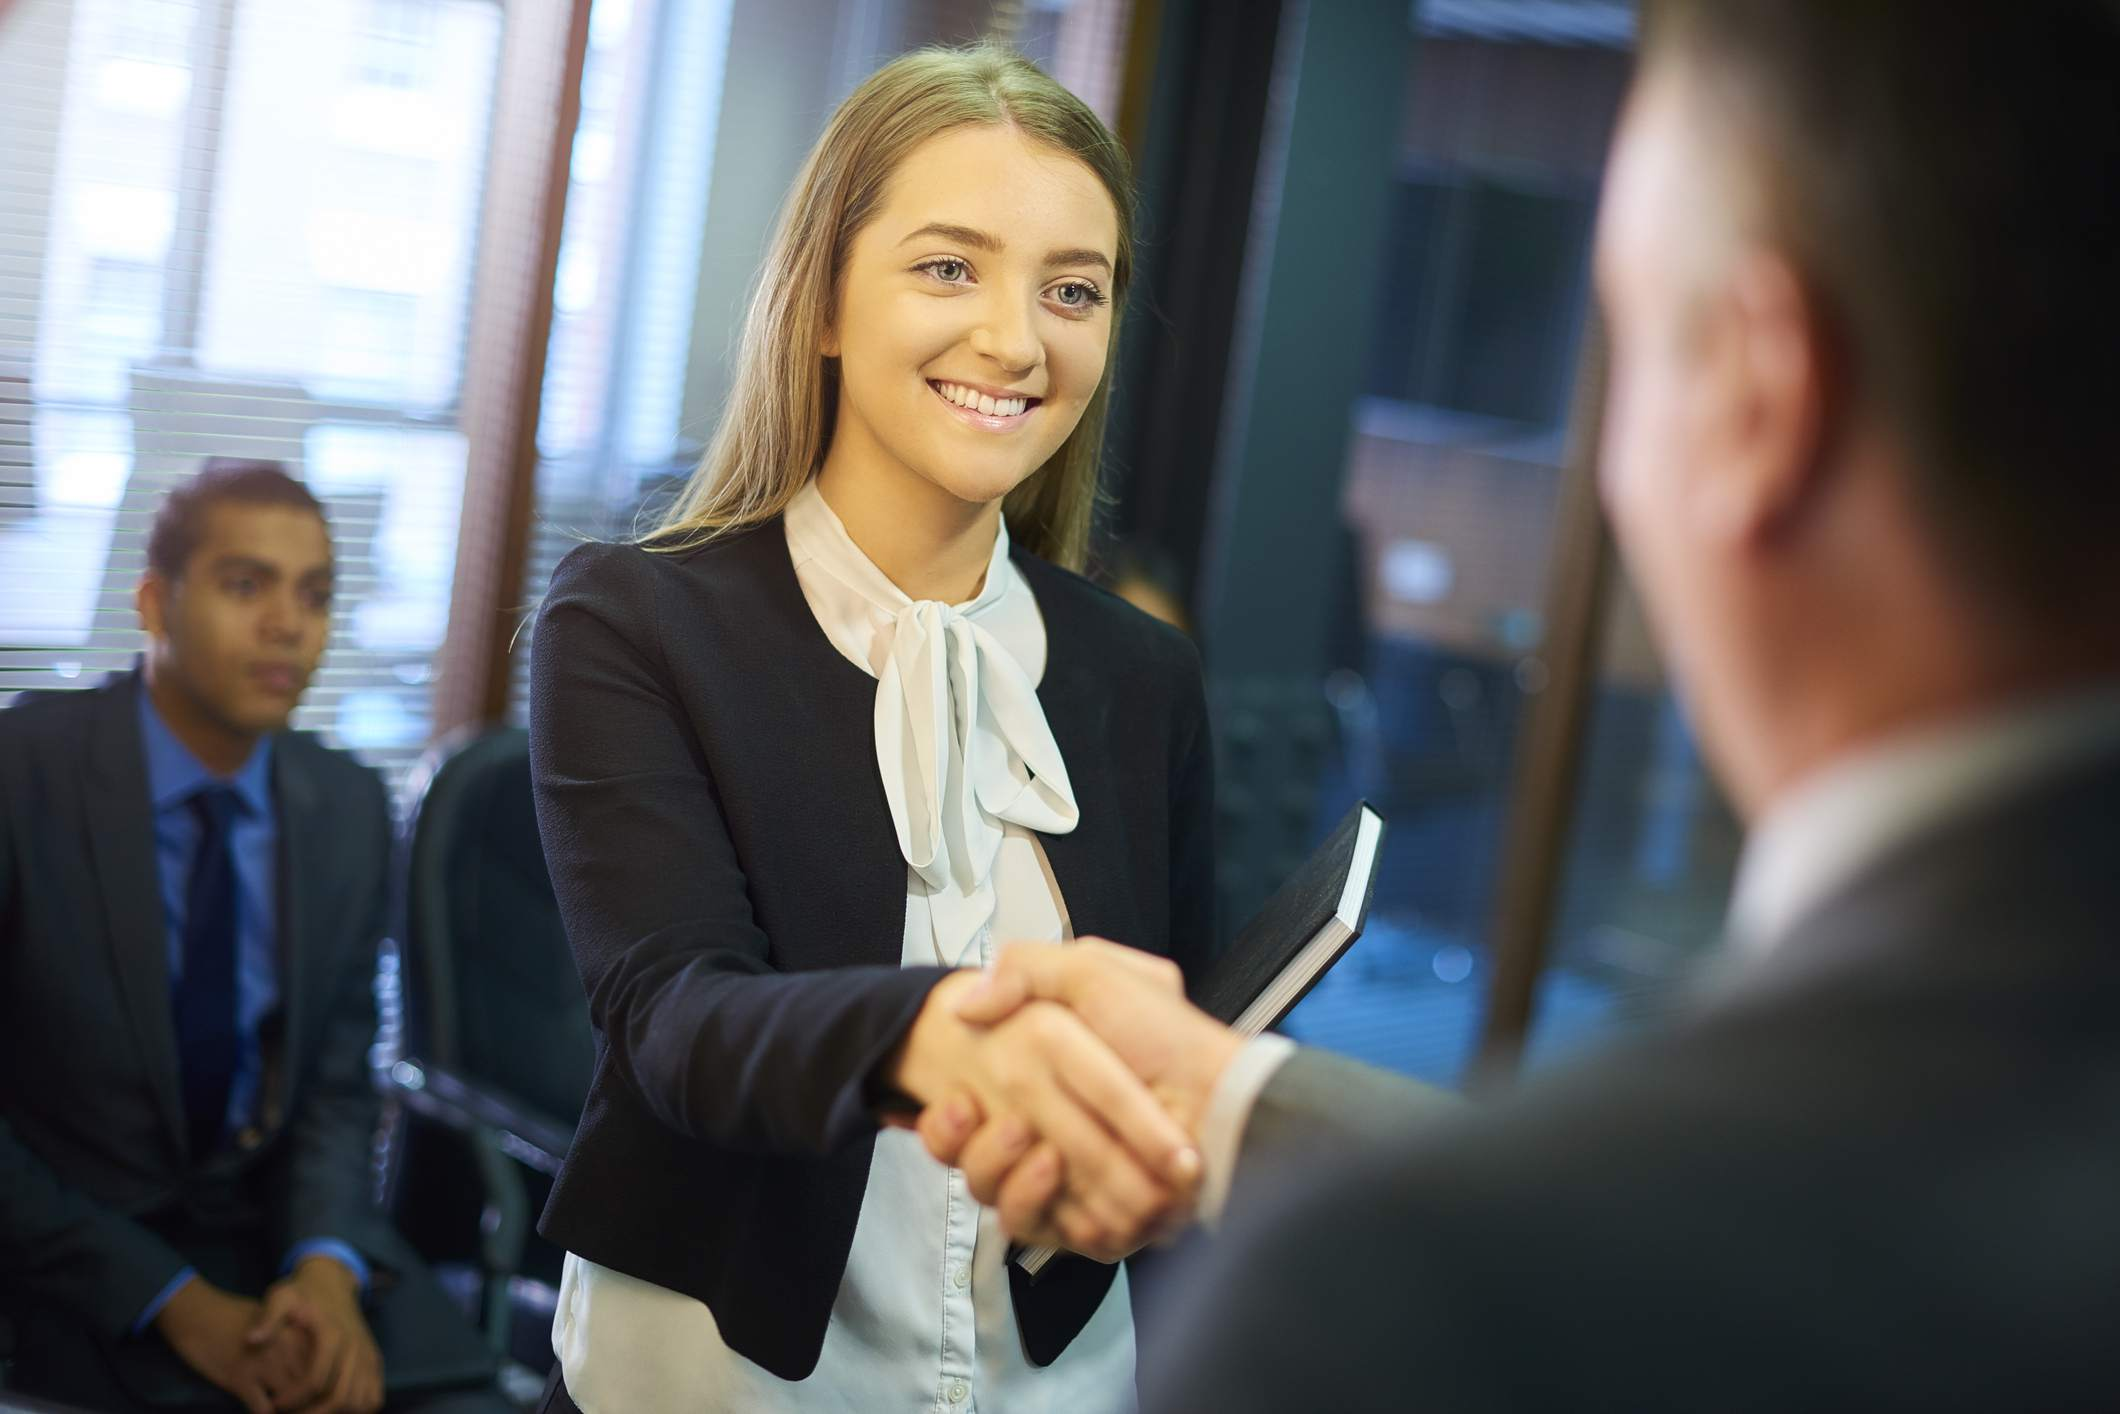 Young woman shaking hands with employer